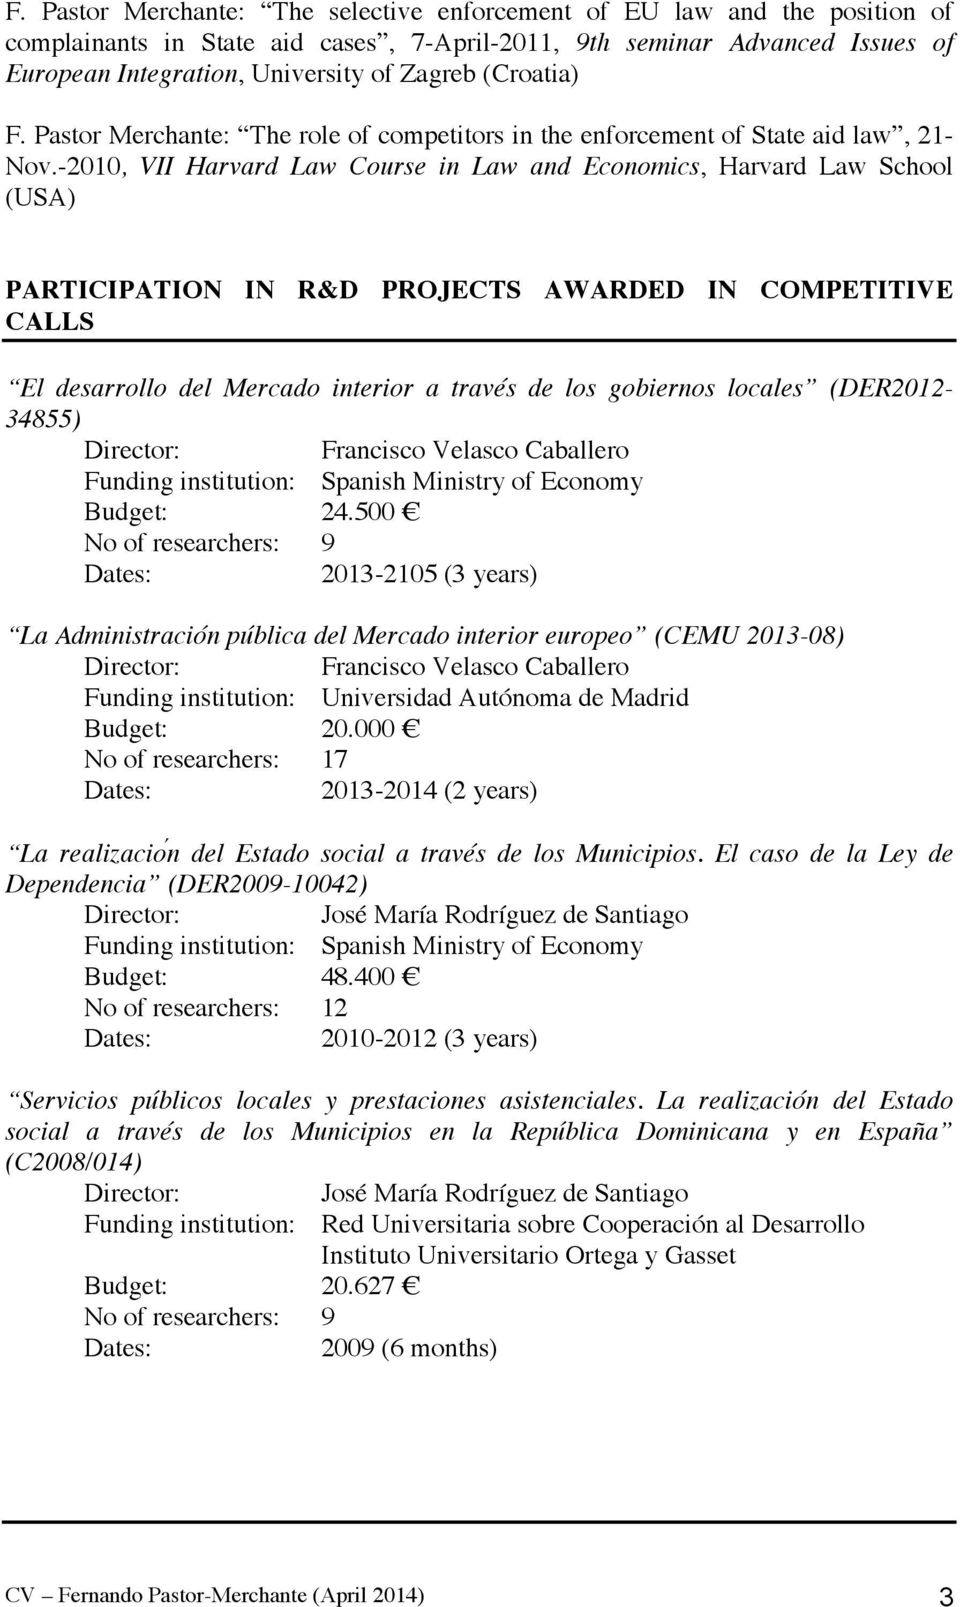 -2010, VII Harvard Law Course in Law and Economics, Harvard Law School (USA) PARTICIPATION IN R&D PROJECTS AWARDED IN COMPETITIVE CALLS El desarrollo del Mercado interior a través de los gobiernos